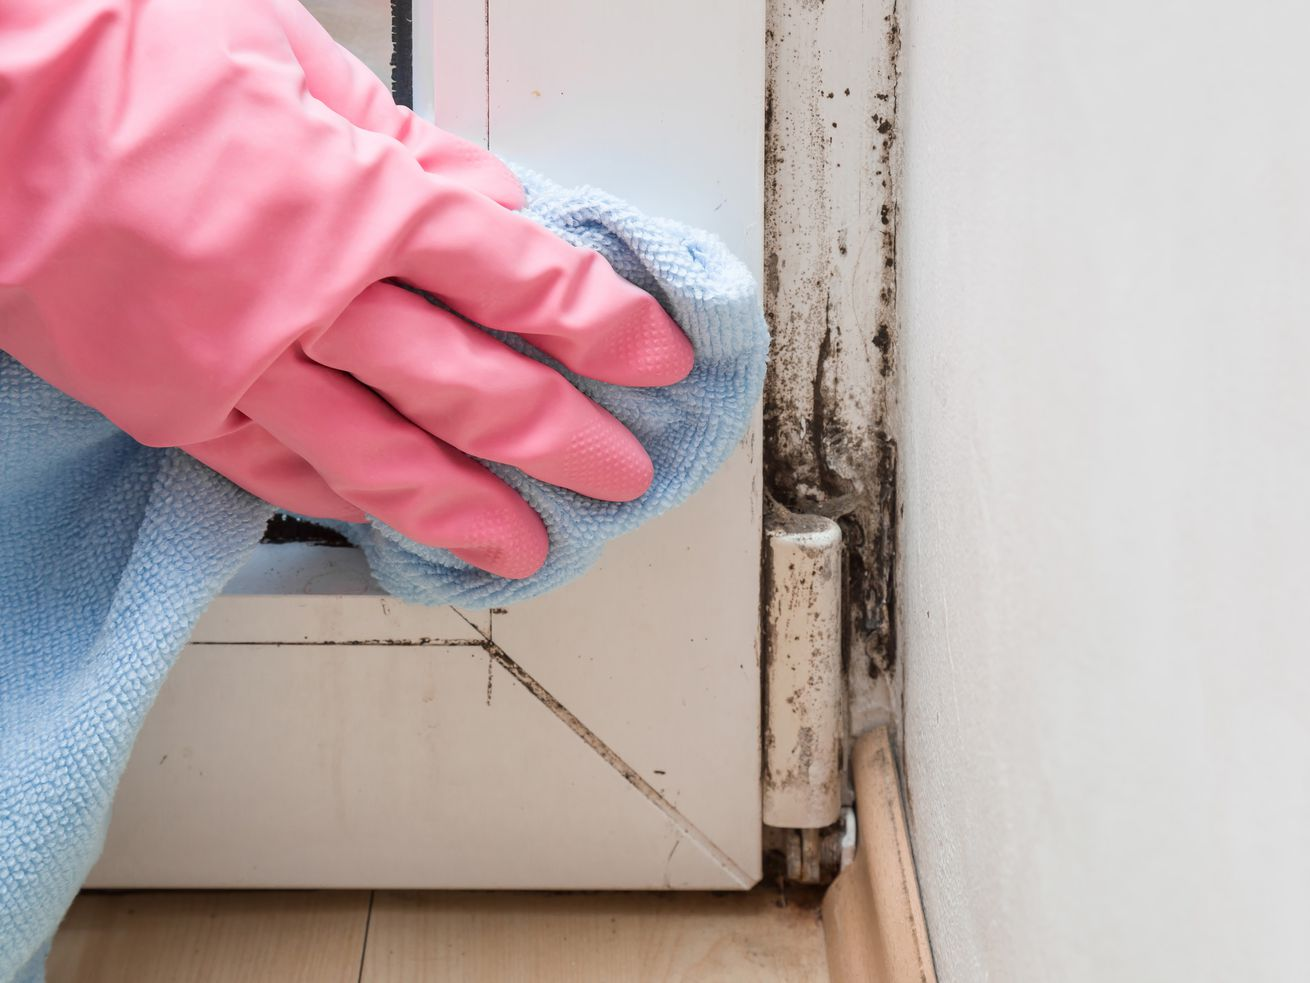 A hand wearing a pink cleaning glove removing mold from the corner of a door.